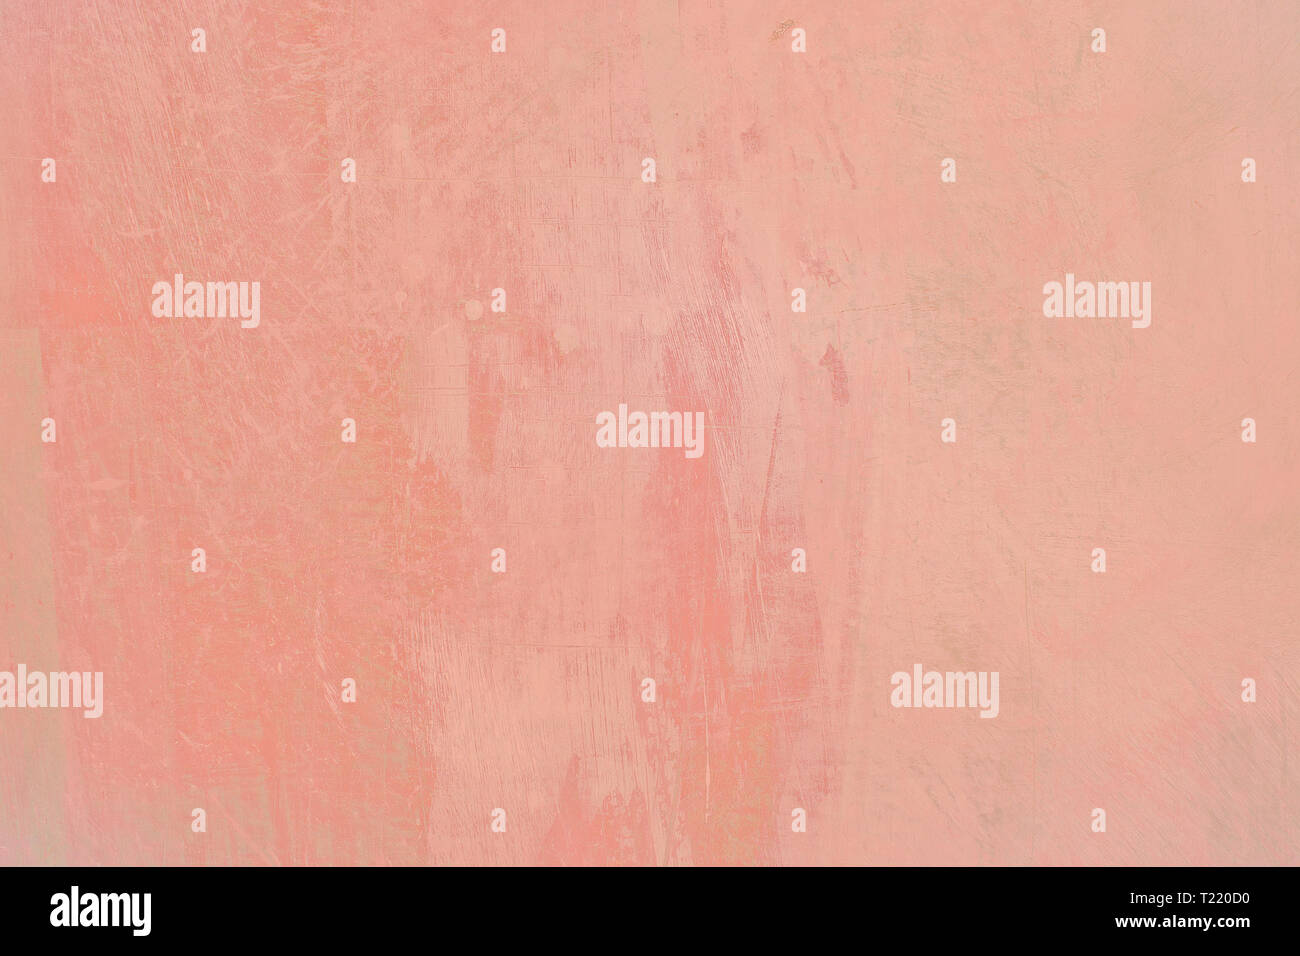 Grungy red roughcast wall scratchy background texture toned